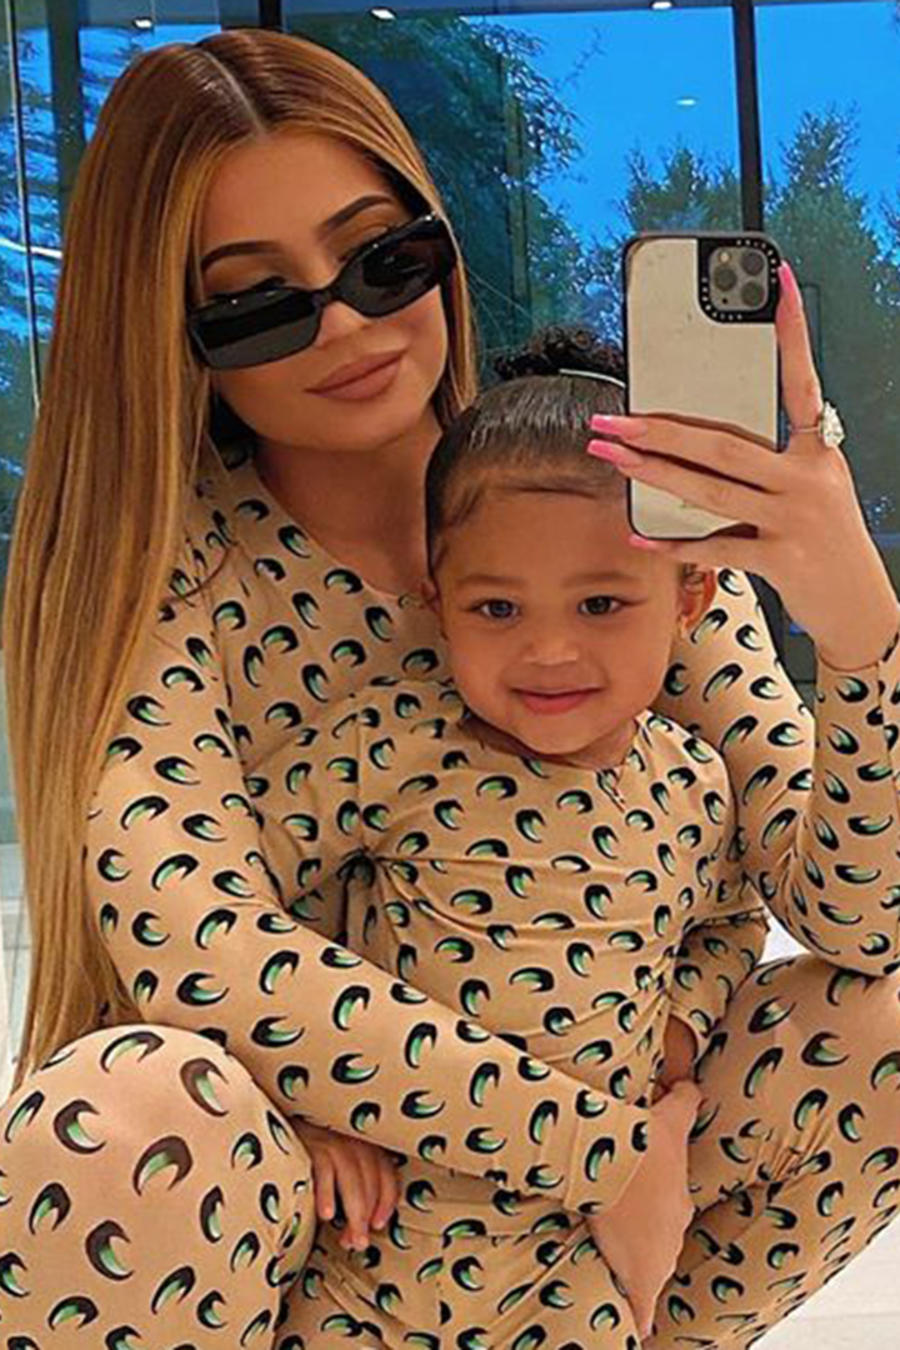 The Mansion Where Kylie & Stormi are Spending Quarantine